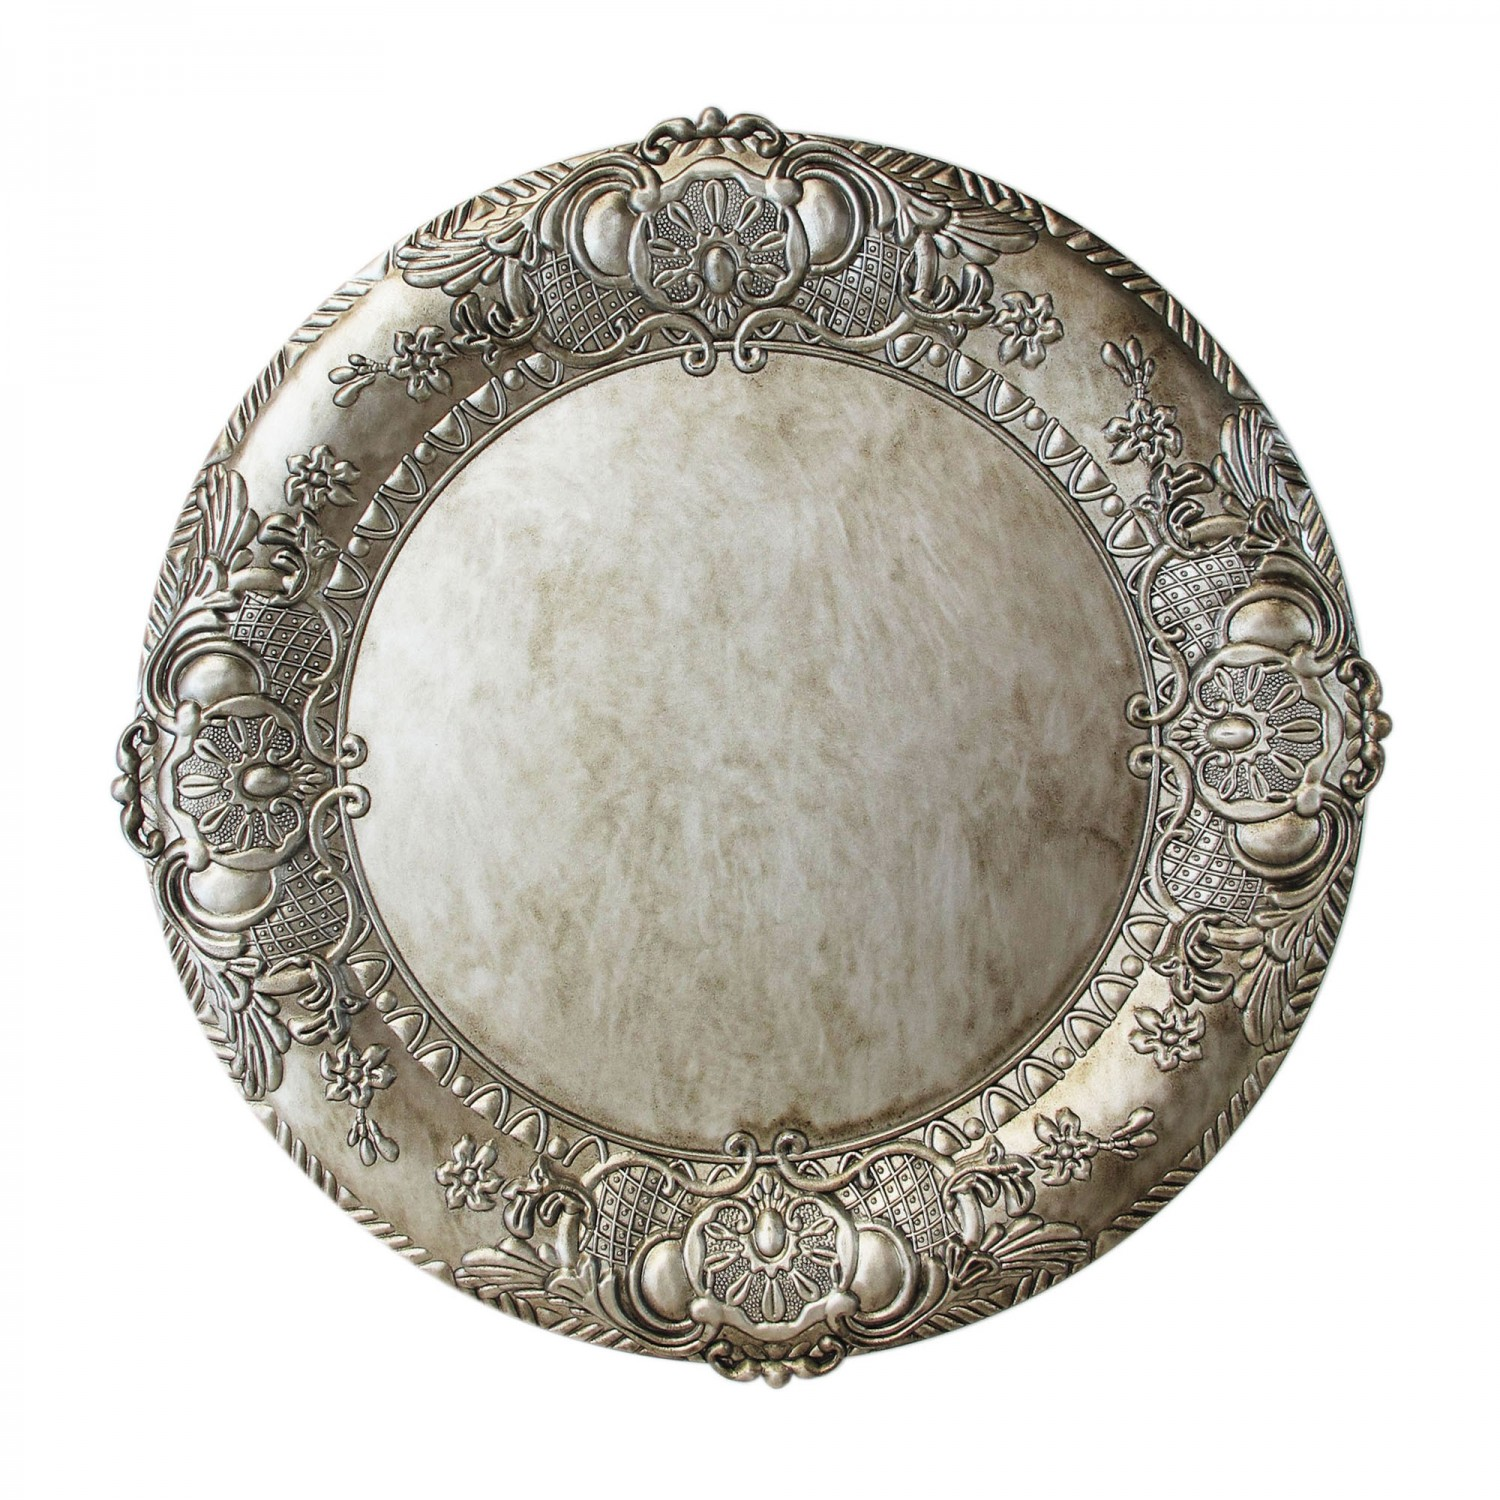 The Jay Companies 1320424 Round Embossed Silver Charger Plate 14""